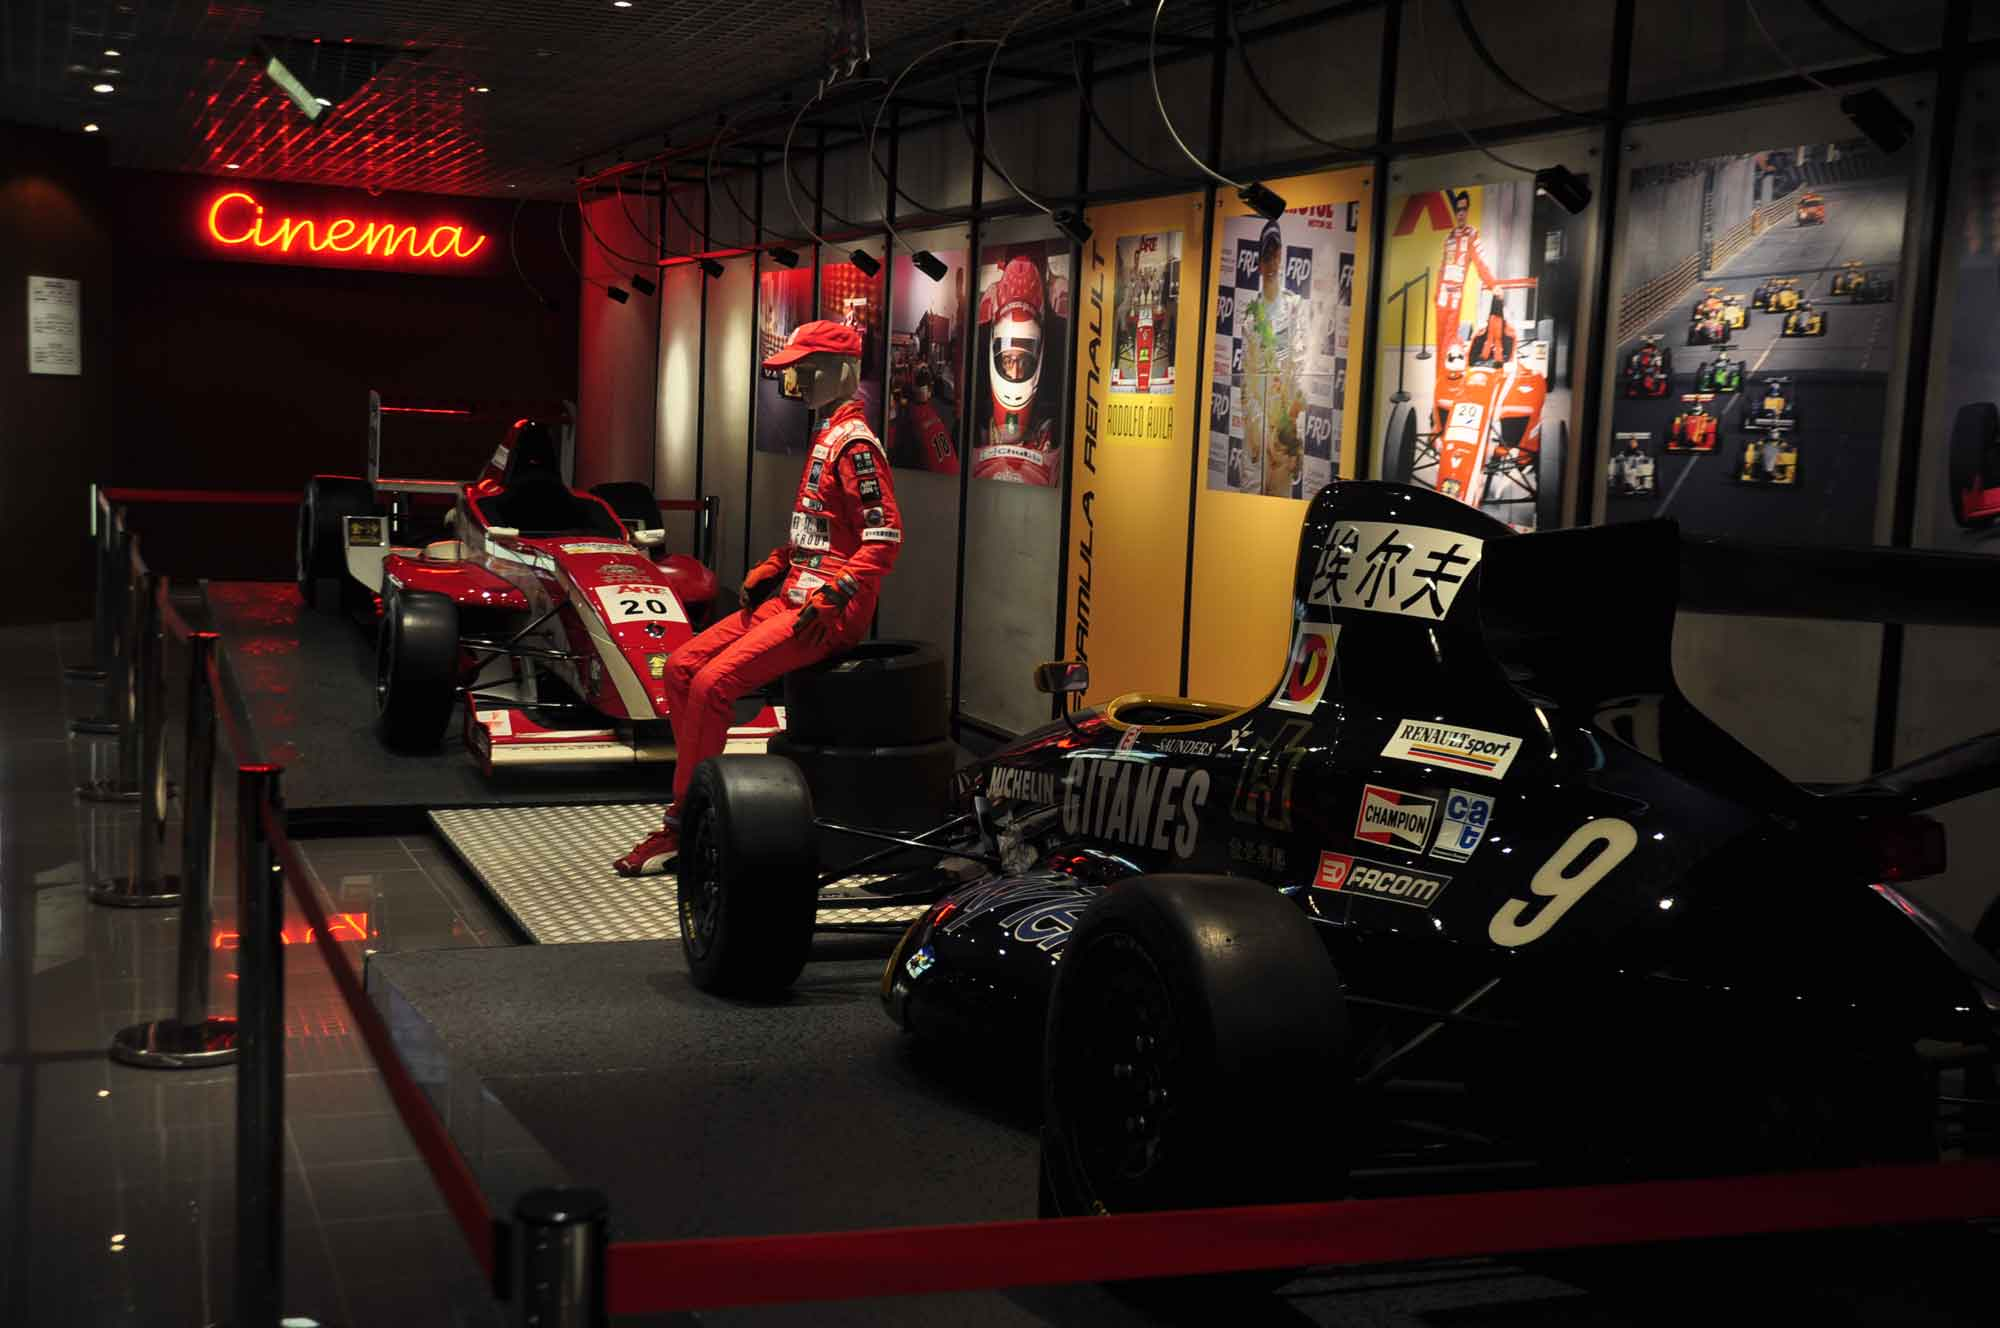 Grand Prix Museum sports cars and Cinema sign